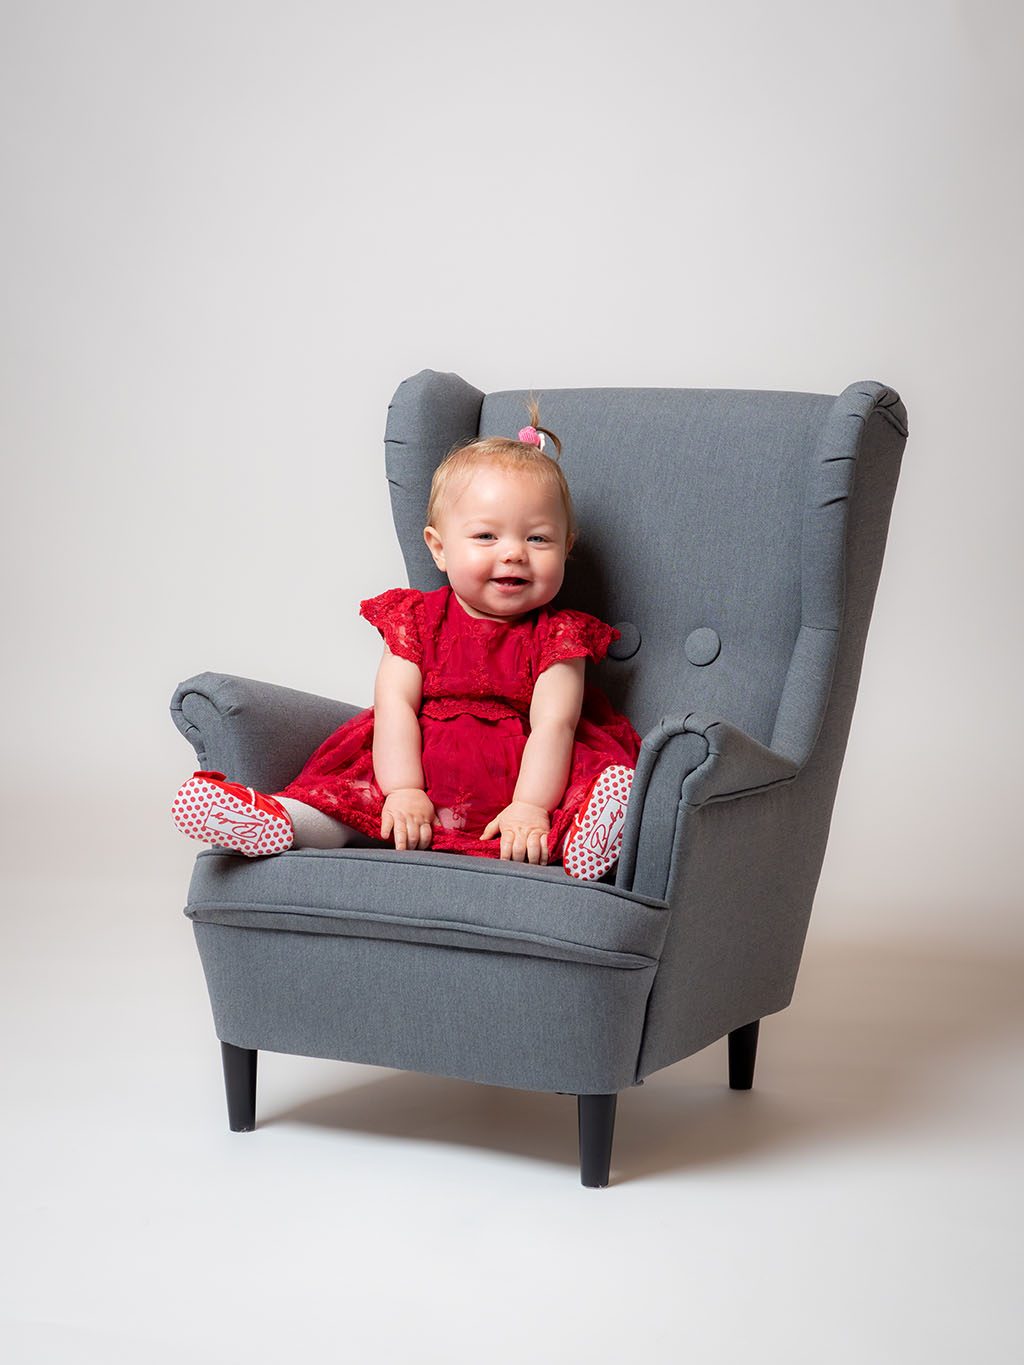 baby smiling sitting up in chair for photos taken by qualified baby photographer in Braintree, Essex